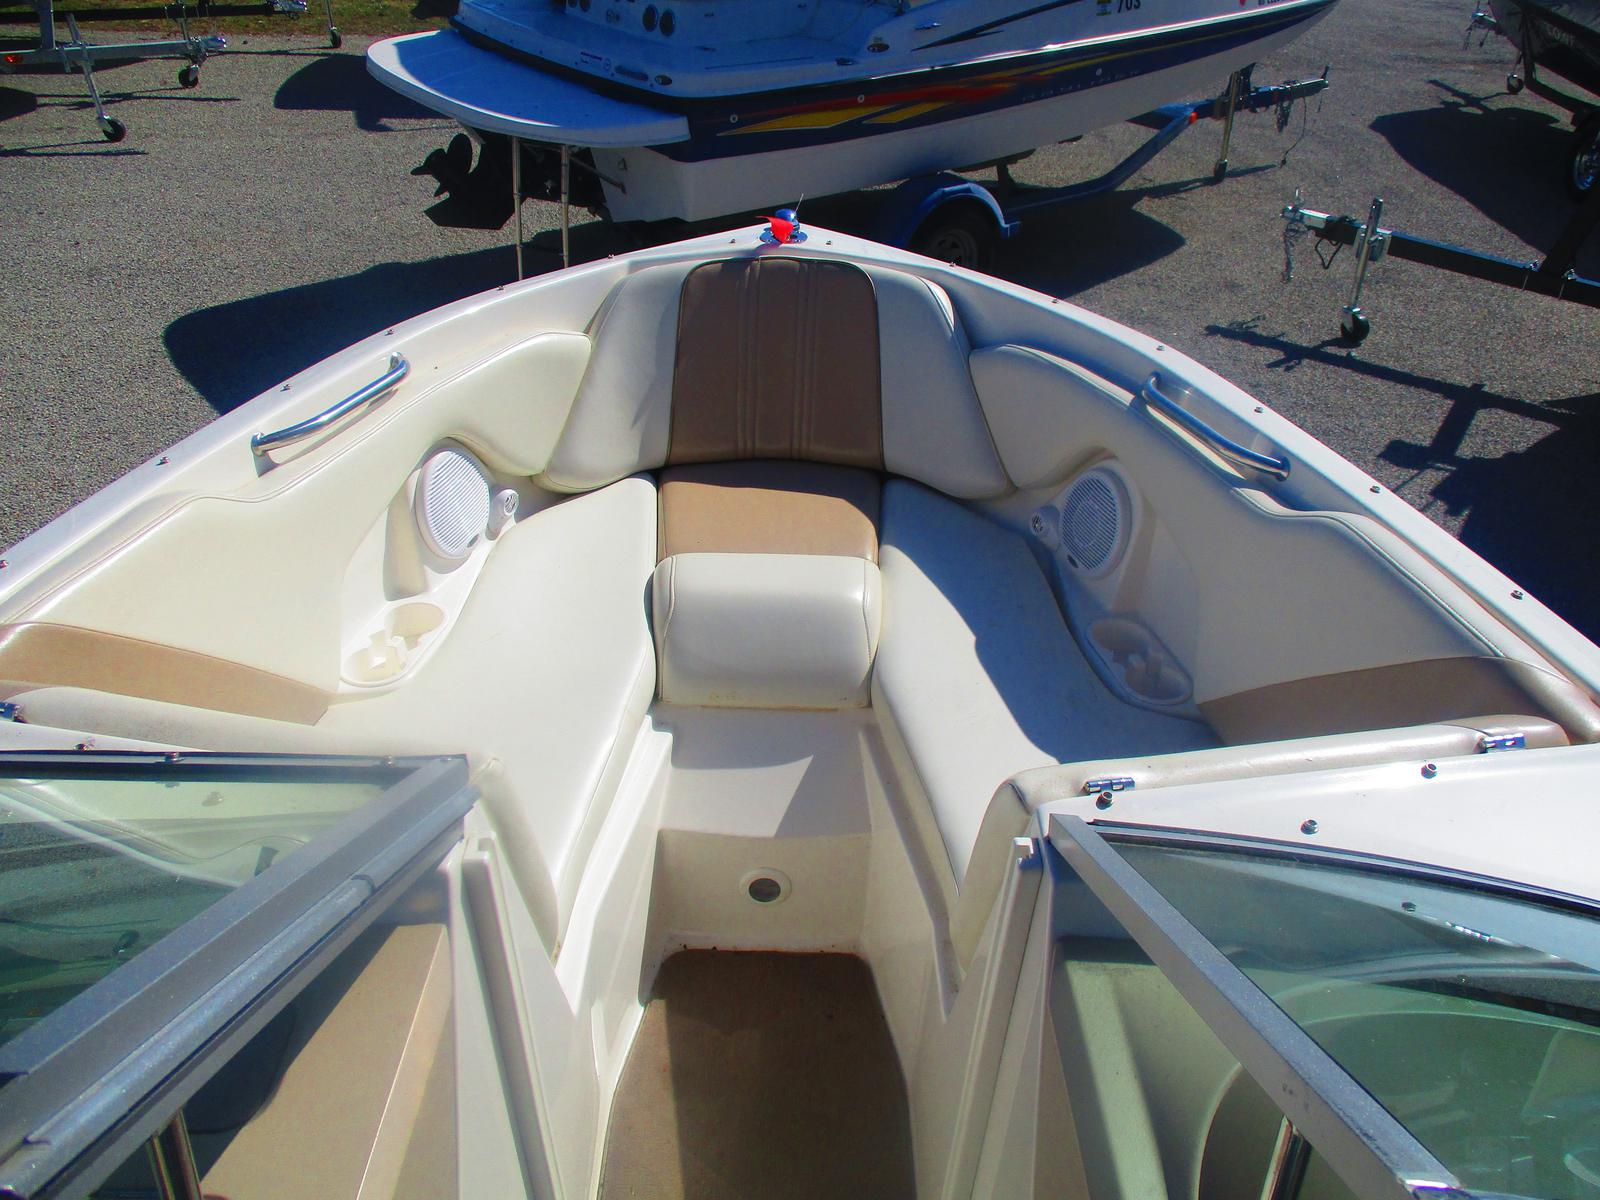 2003 Regal boat for sale, model of the boat is SESSION 22XI & Image # 6 of 6